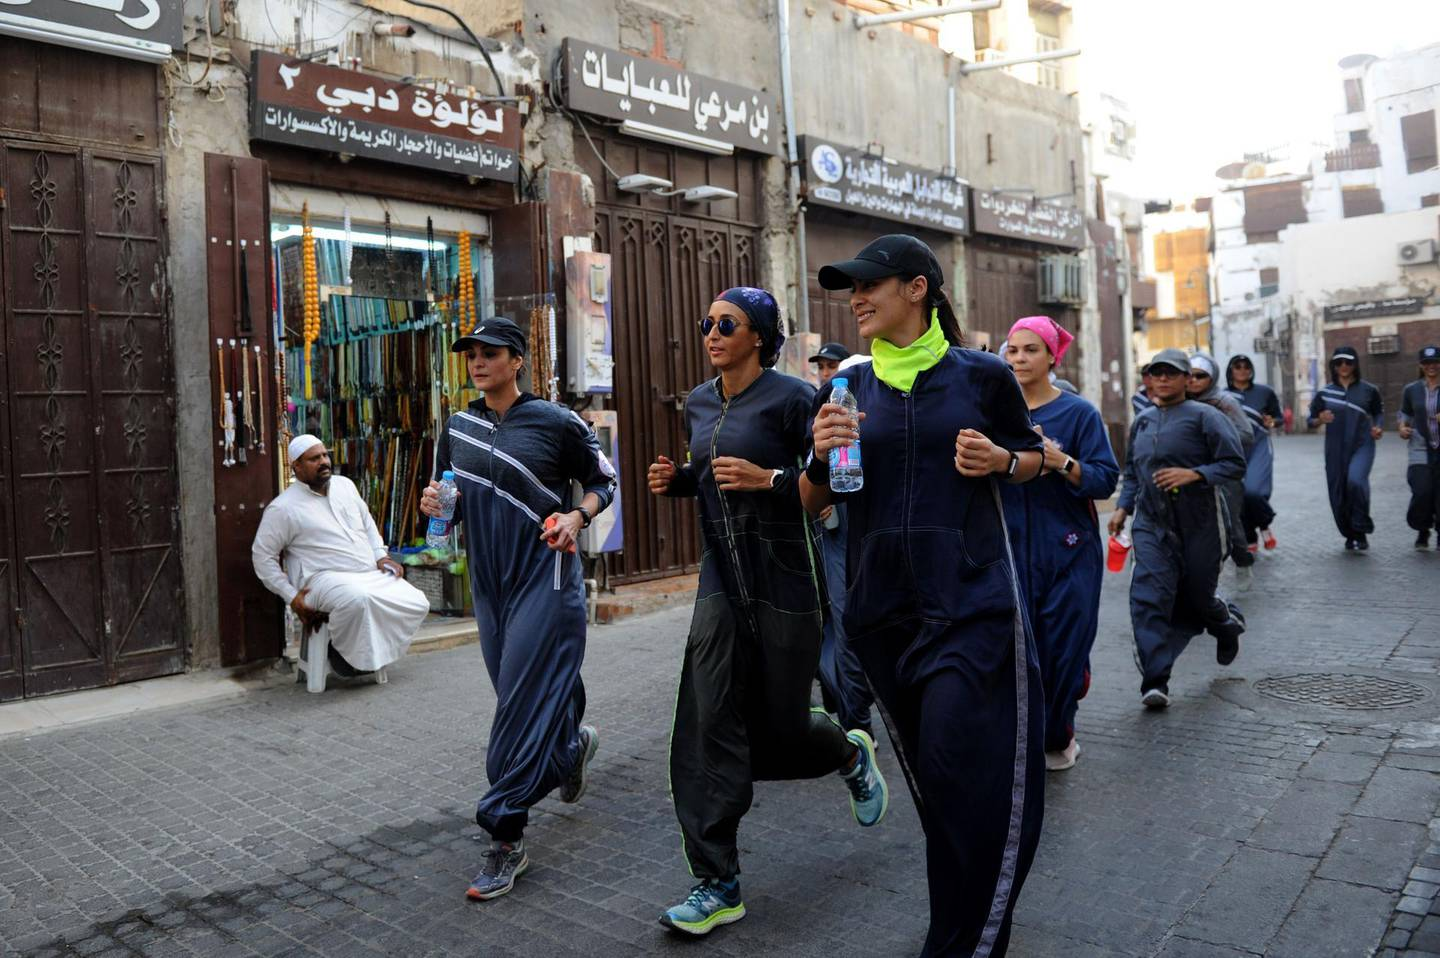 Saudi women jog in the streets of Jeddah's historic al-Balad district on March 8, 2018. Colourful and oozing defiance, a sports-friendly version of the abaya gown was once considered a symbol of cultural rebellion in conservative Saudi Arabia, but it is fast becoming the new normal. / AFP PHOTO / Amer HILABI